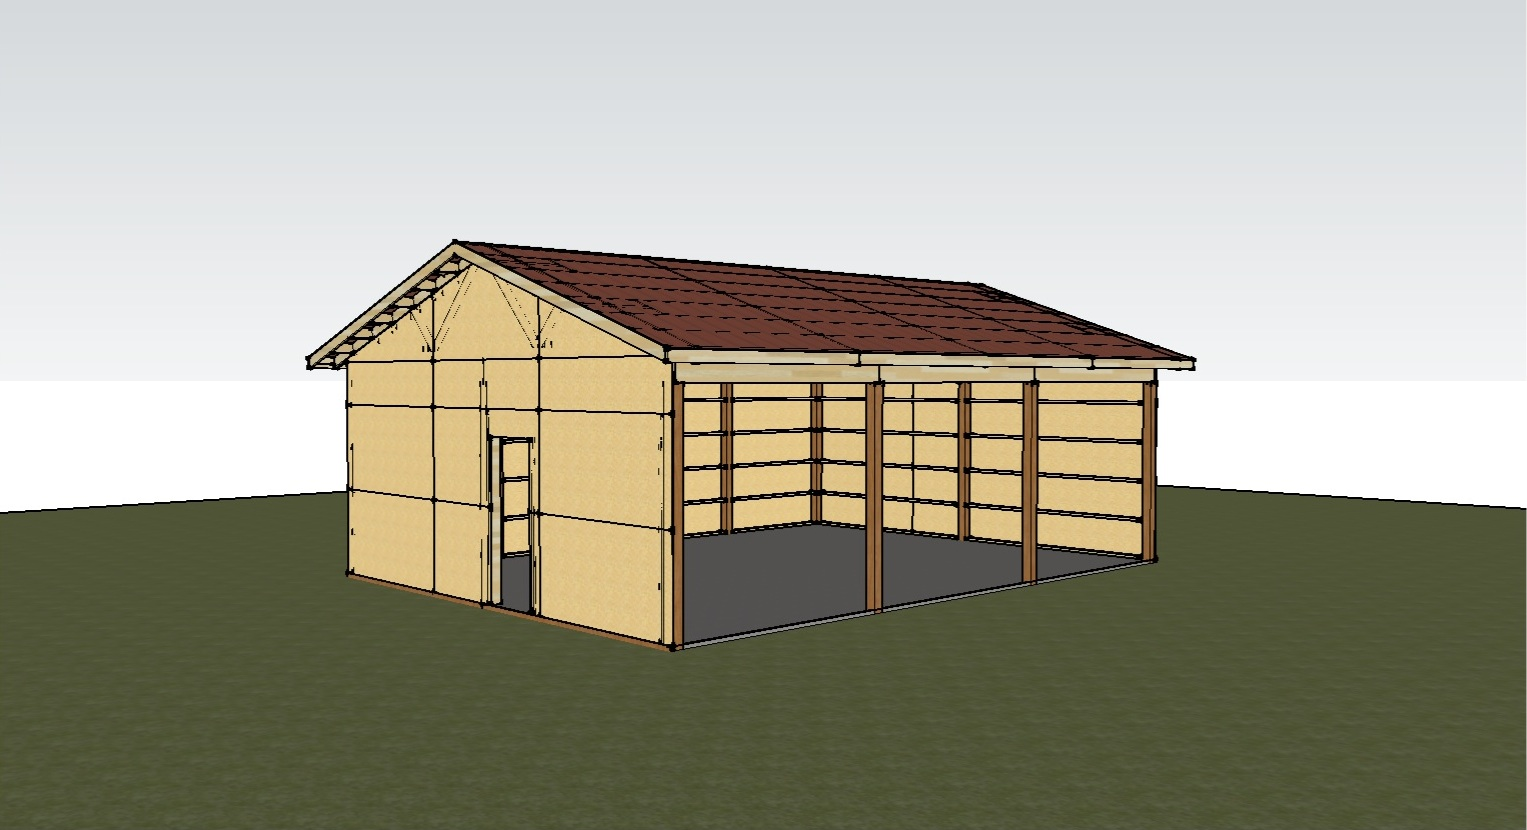 Pole barn plans and materials redneck diy for What is a pole barn house